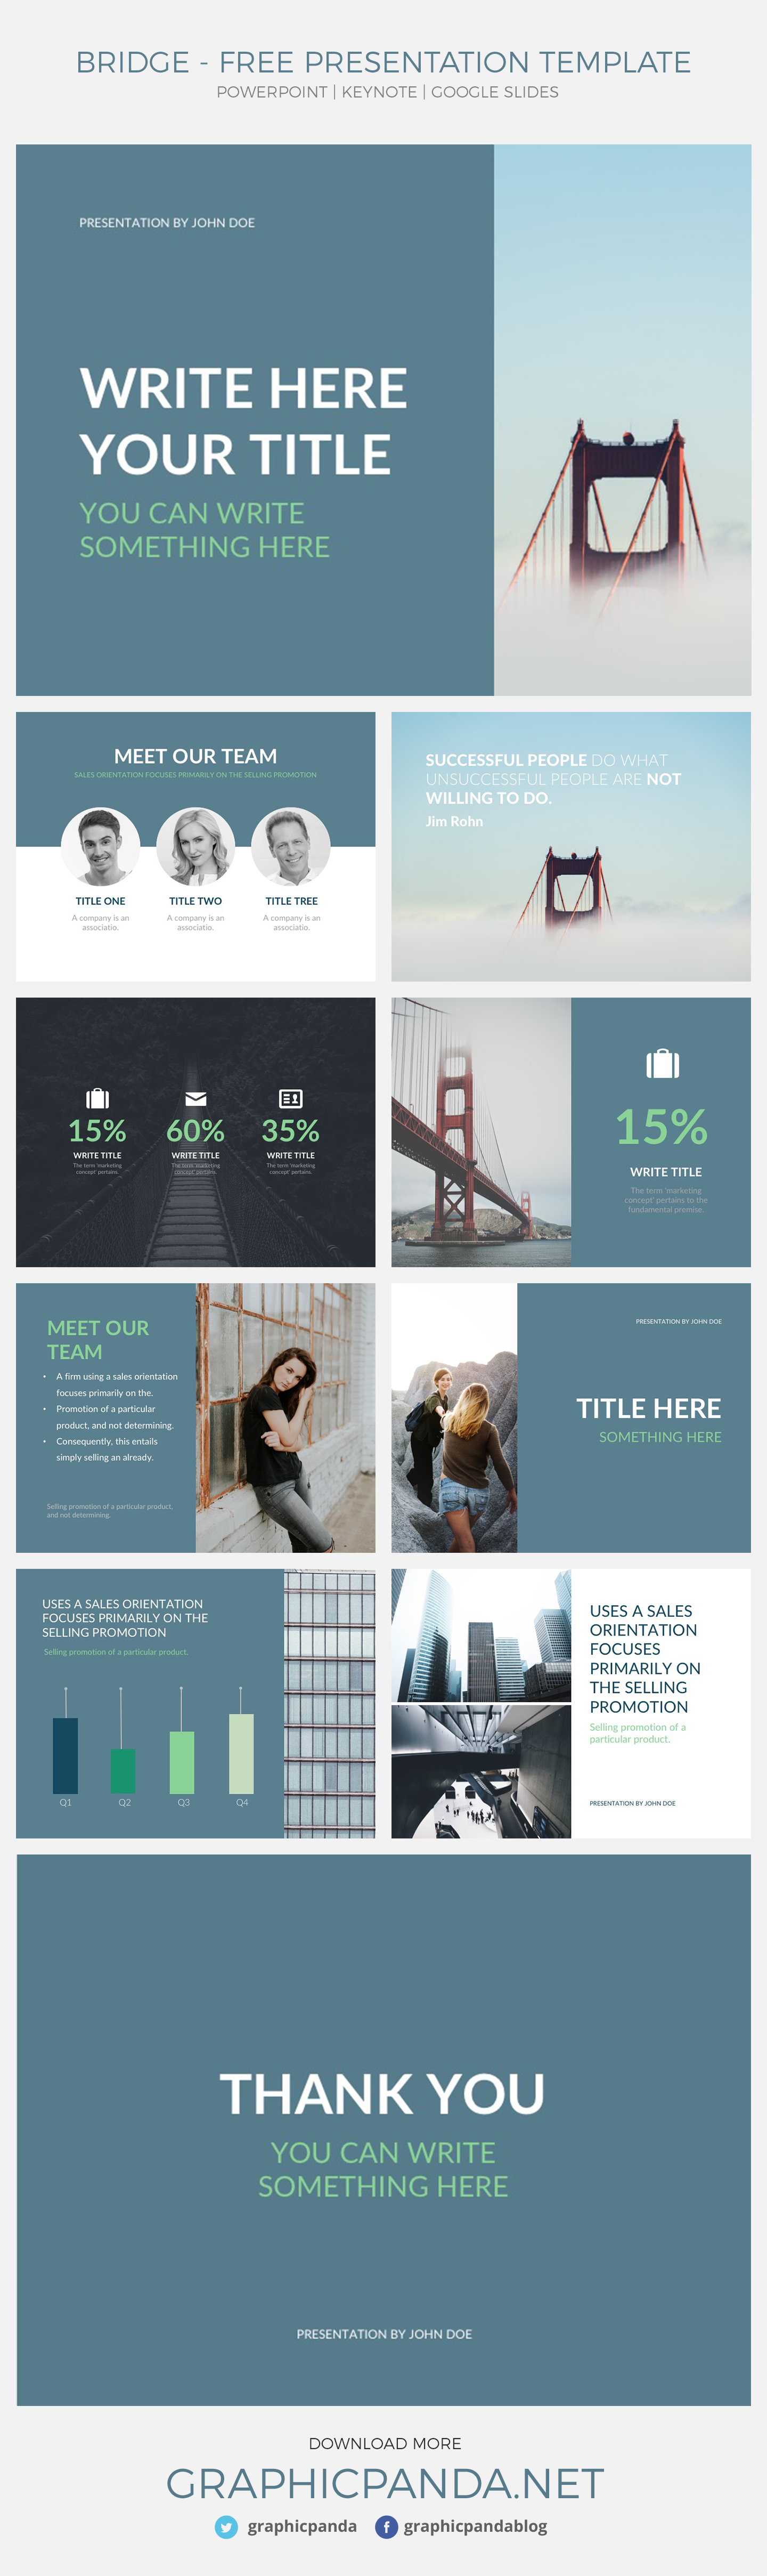 Presentation templates for Google Slides, Powerpoint, or Apple Keynote are becoming more common in today's world. The reason being they simplify and save many people lots of time. Also, templates help people out when they do not know what to design in their presentation. Presentation templates strategically form layouts that you can input your information to. Or get ideas of what to put in the unique and professional layouts.